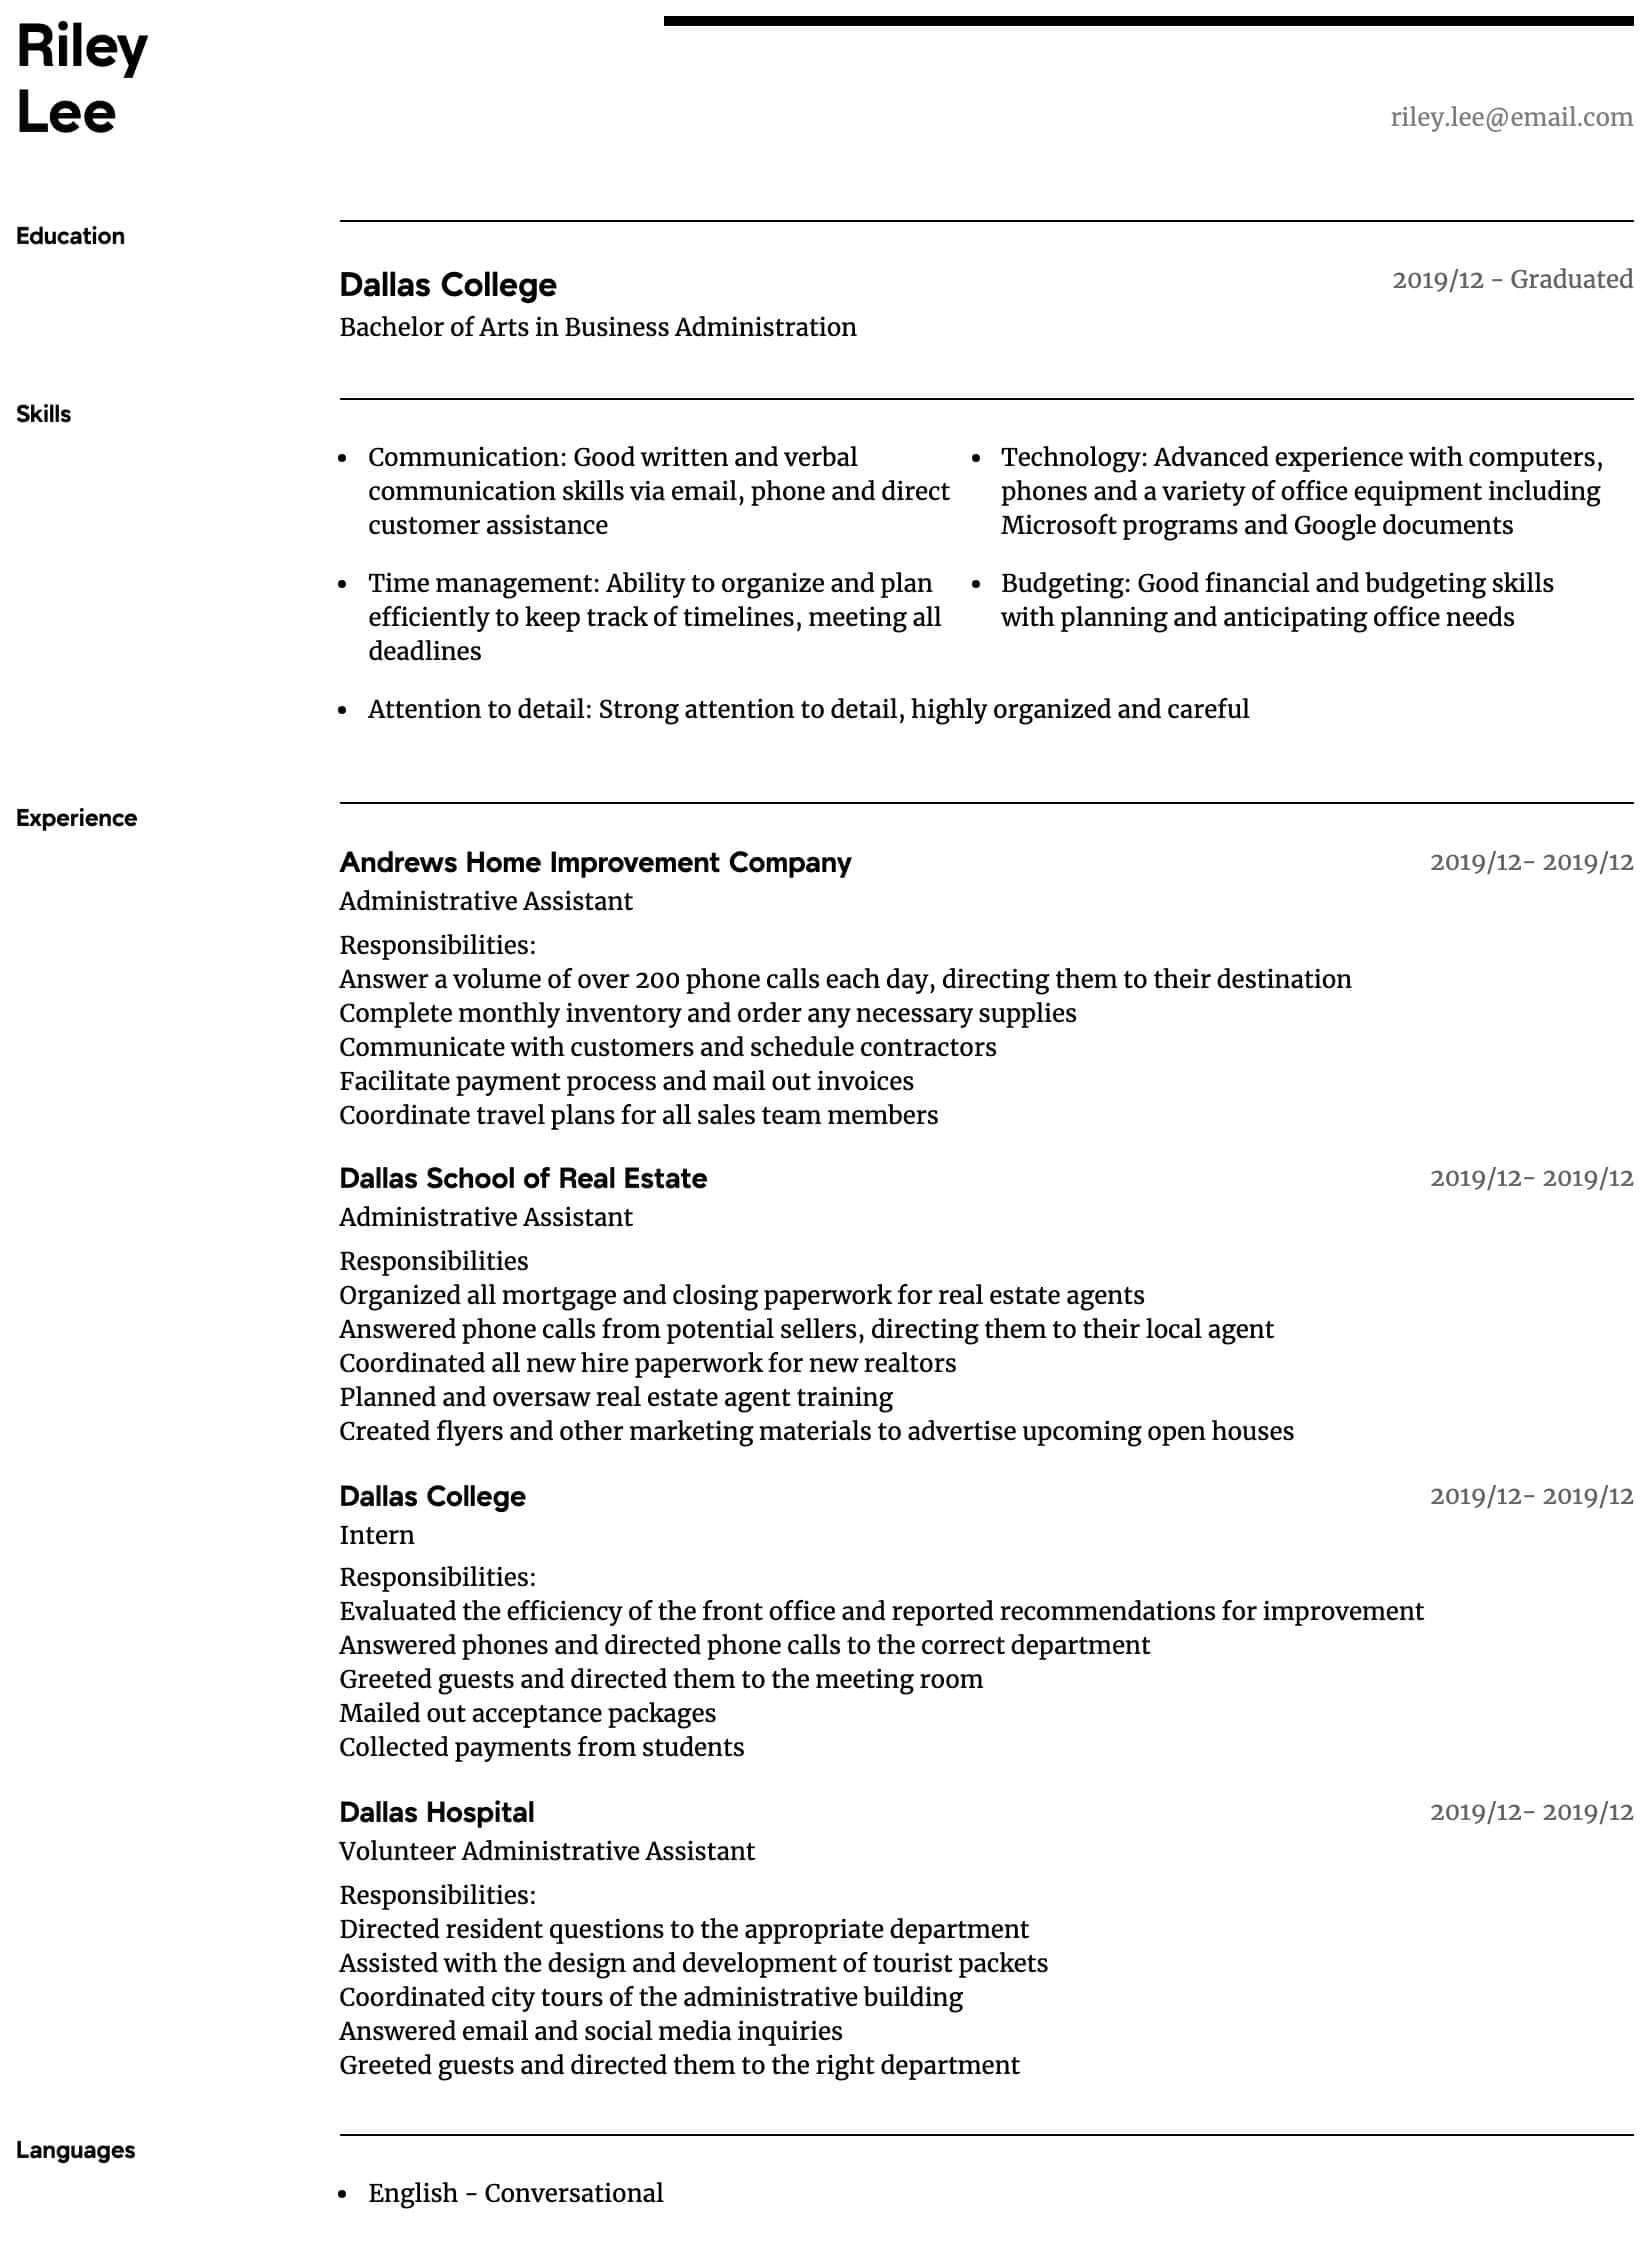 administrative assistant resume samples all experience levels admin sample intermediate Resume Administrative Assistant Admin Assistant Resume Sample